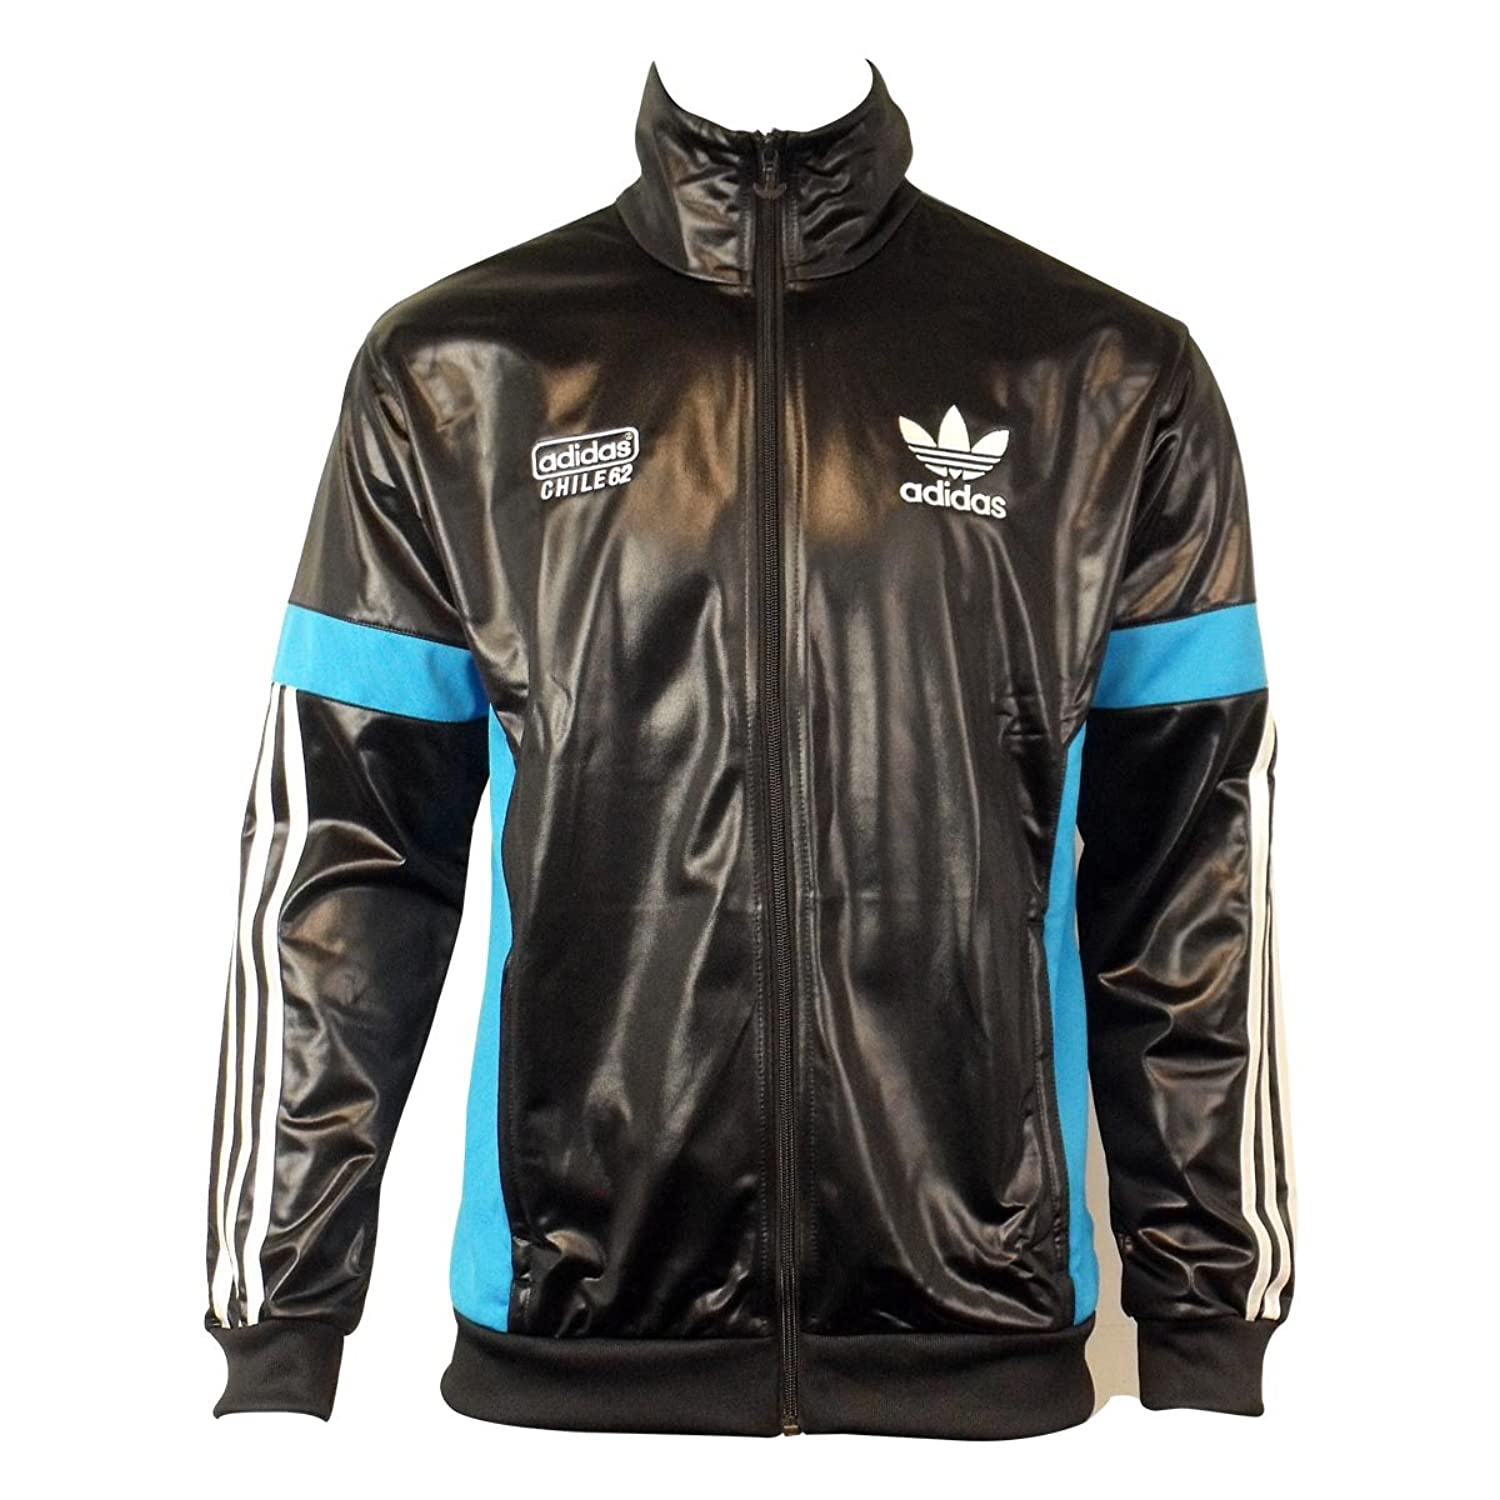 adidas Originals Mens Chile 62 TT Black Track Suit Top Jacket Retro Wet  Look 3XL: Amazon.co.uk: Sports & Outdoors